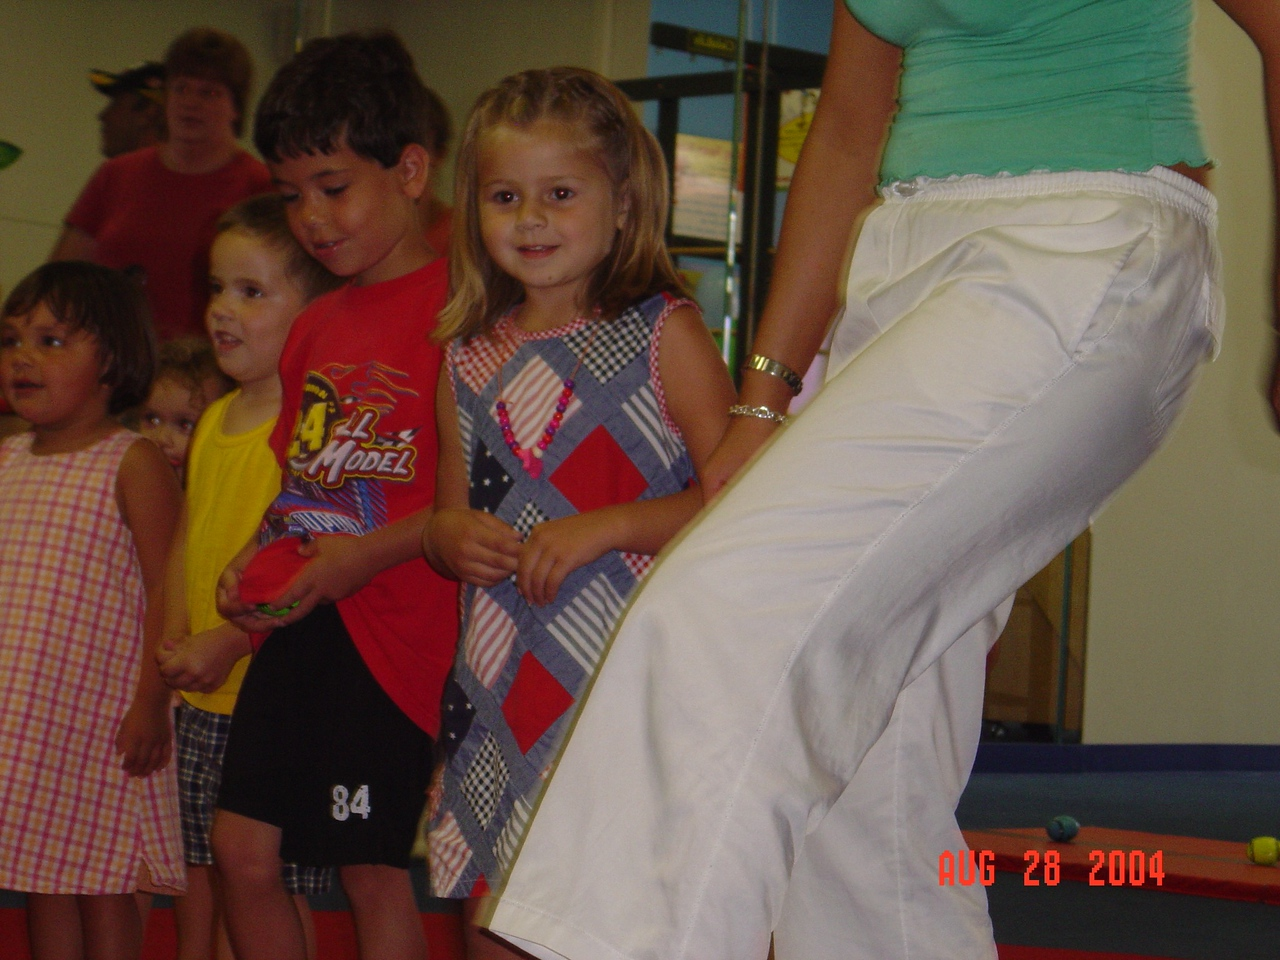 Natalie_plays_games_at_her_party_08-28-04